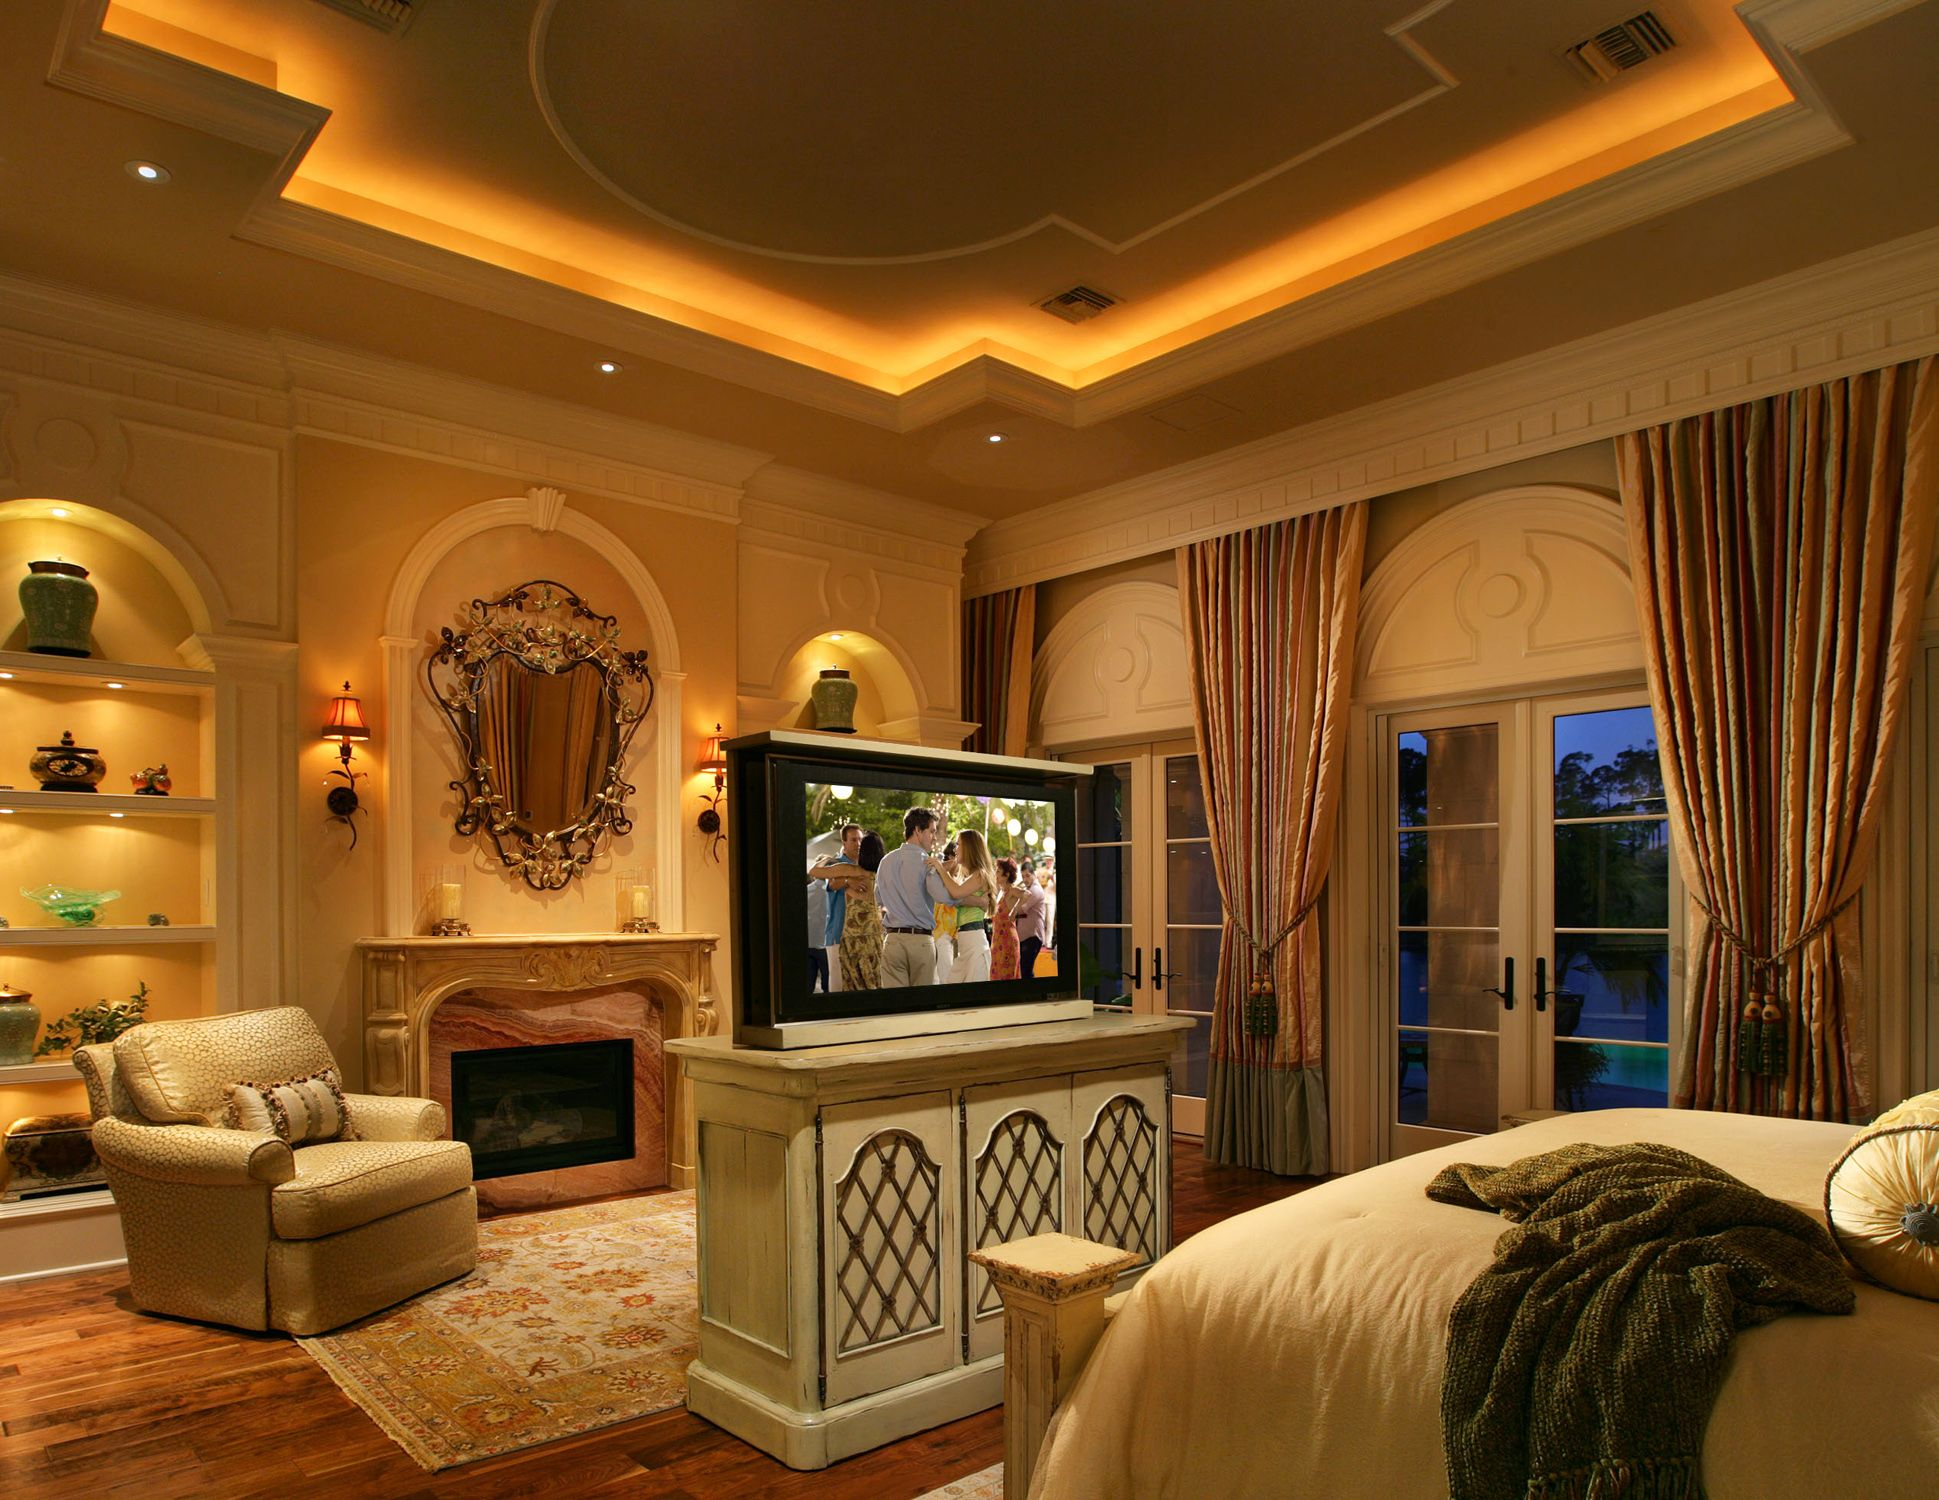 Home Interior Lighting Perimeter Rope Lighting And Panel Molding Detail Emphasize